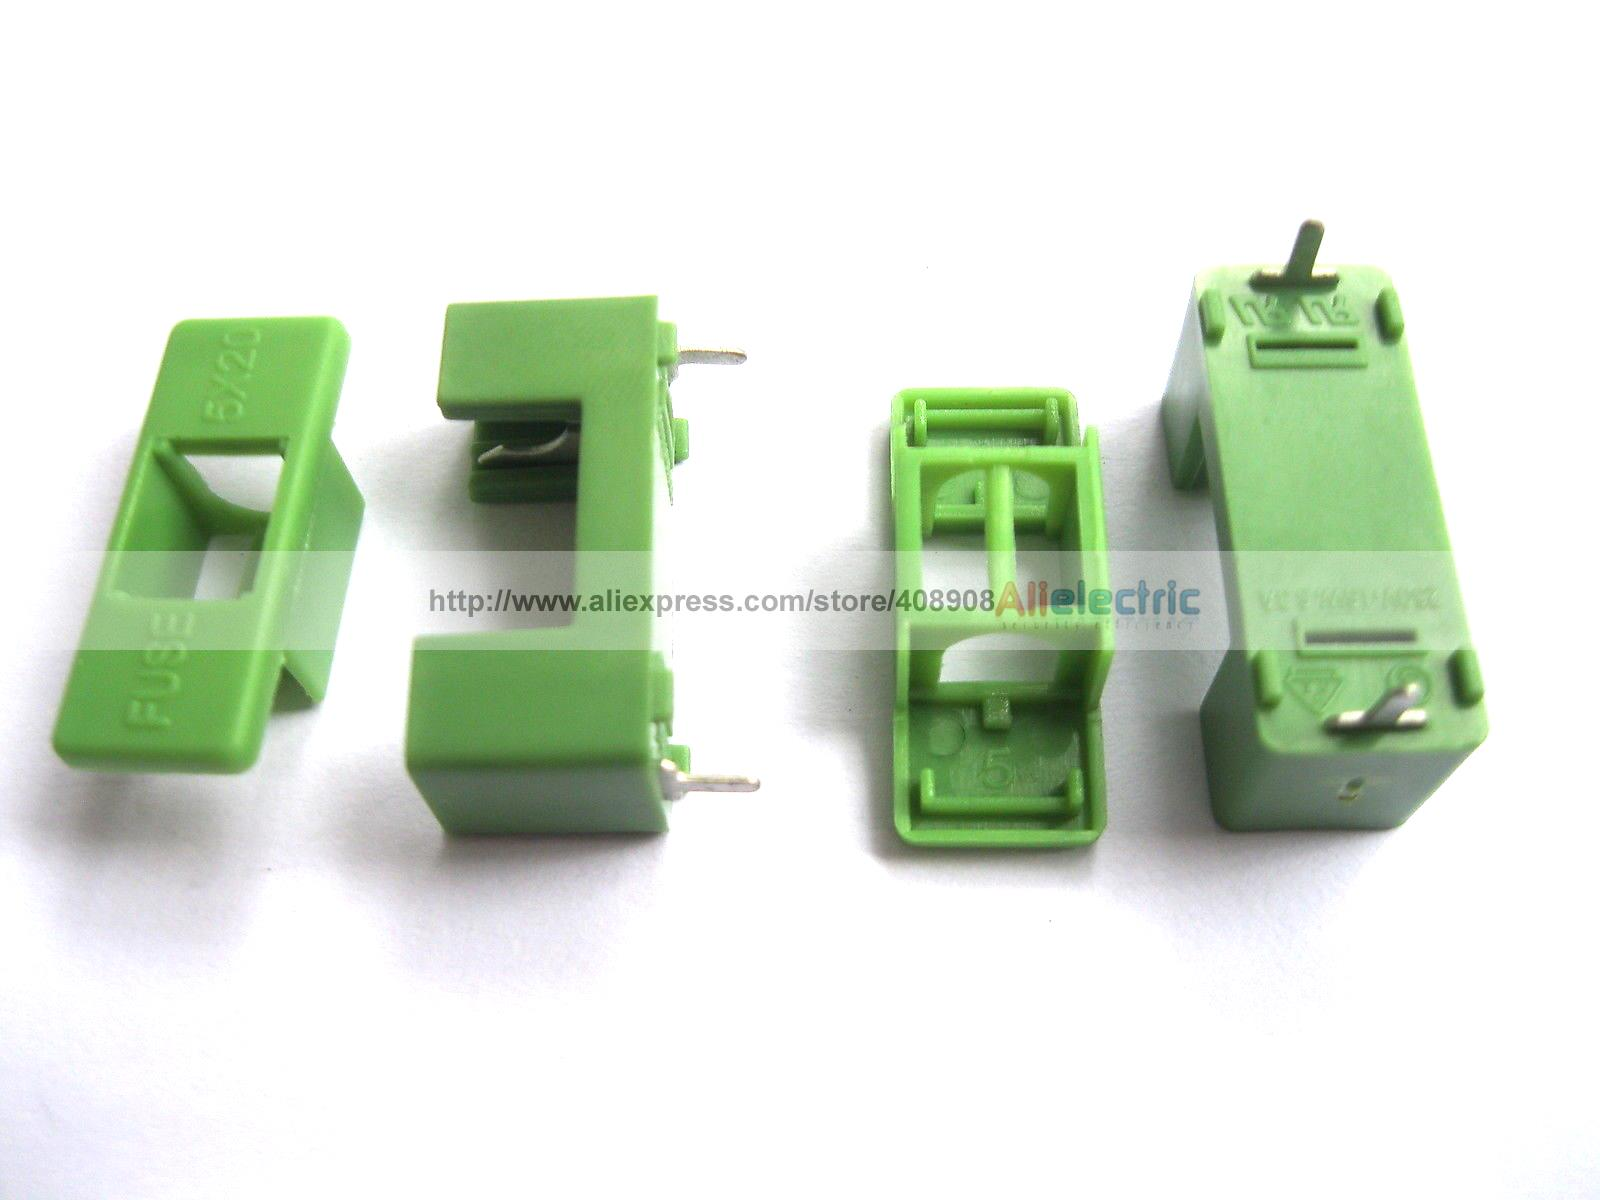 цена 100 Pcs PTF 7 DIP Fuse Holder 6 3A 250V Used for 5x20 Green Color